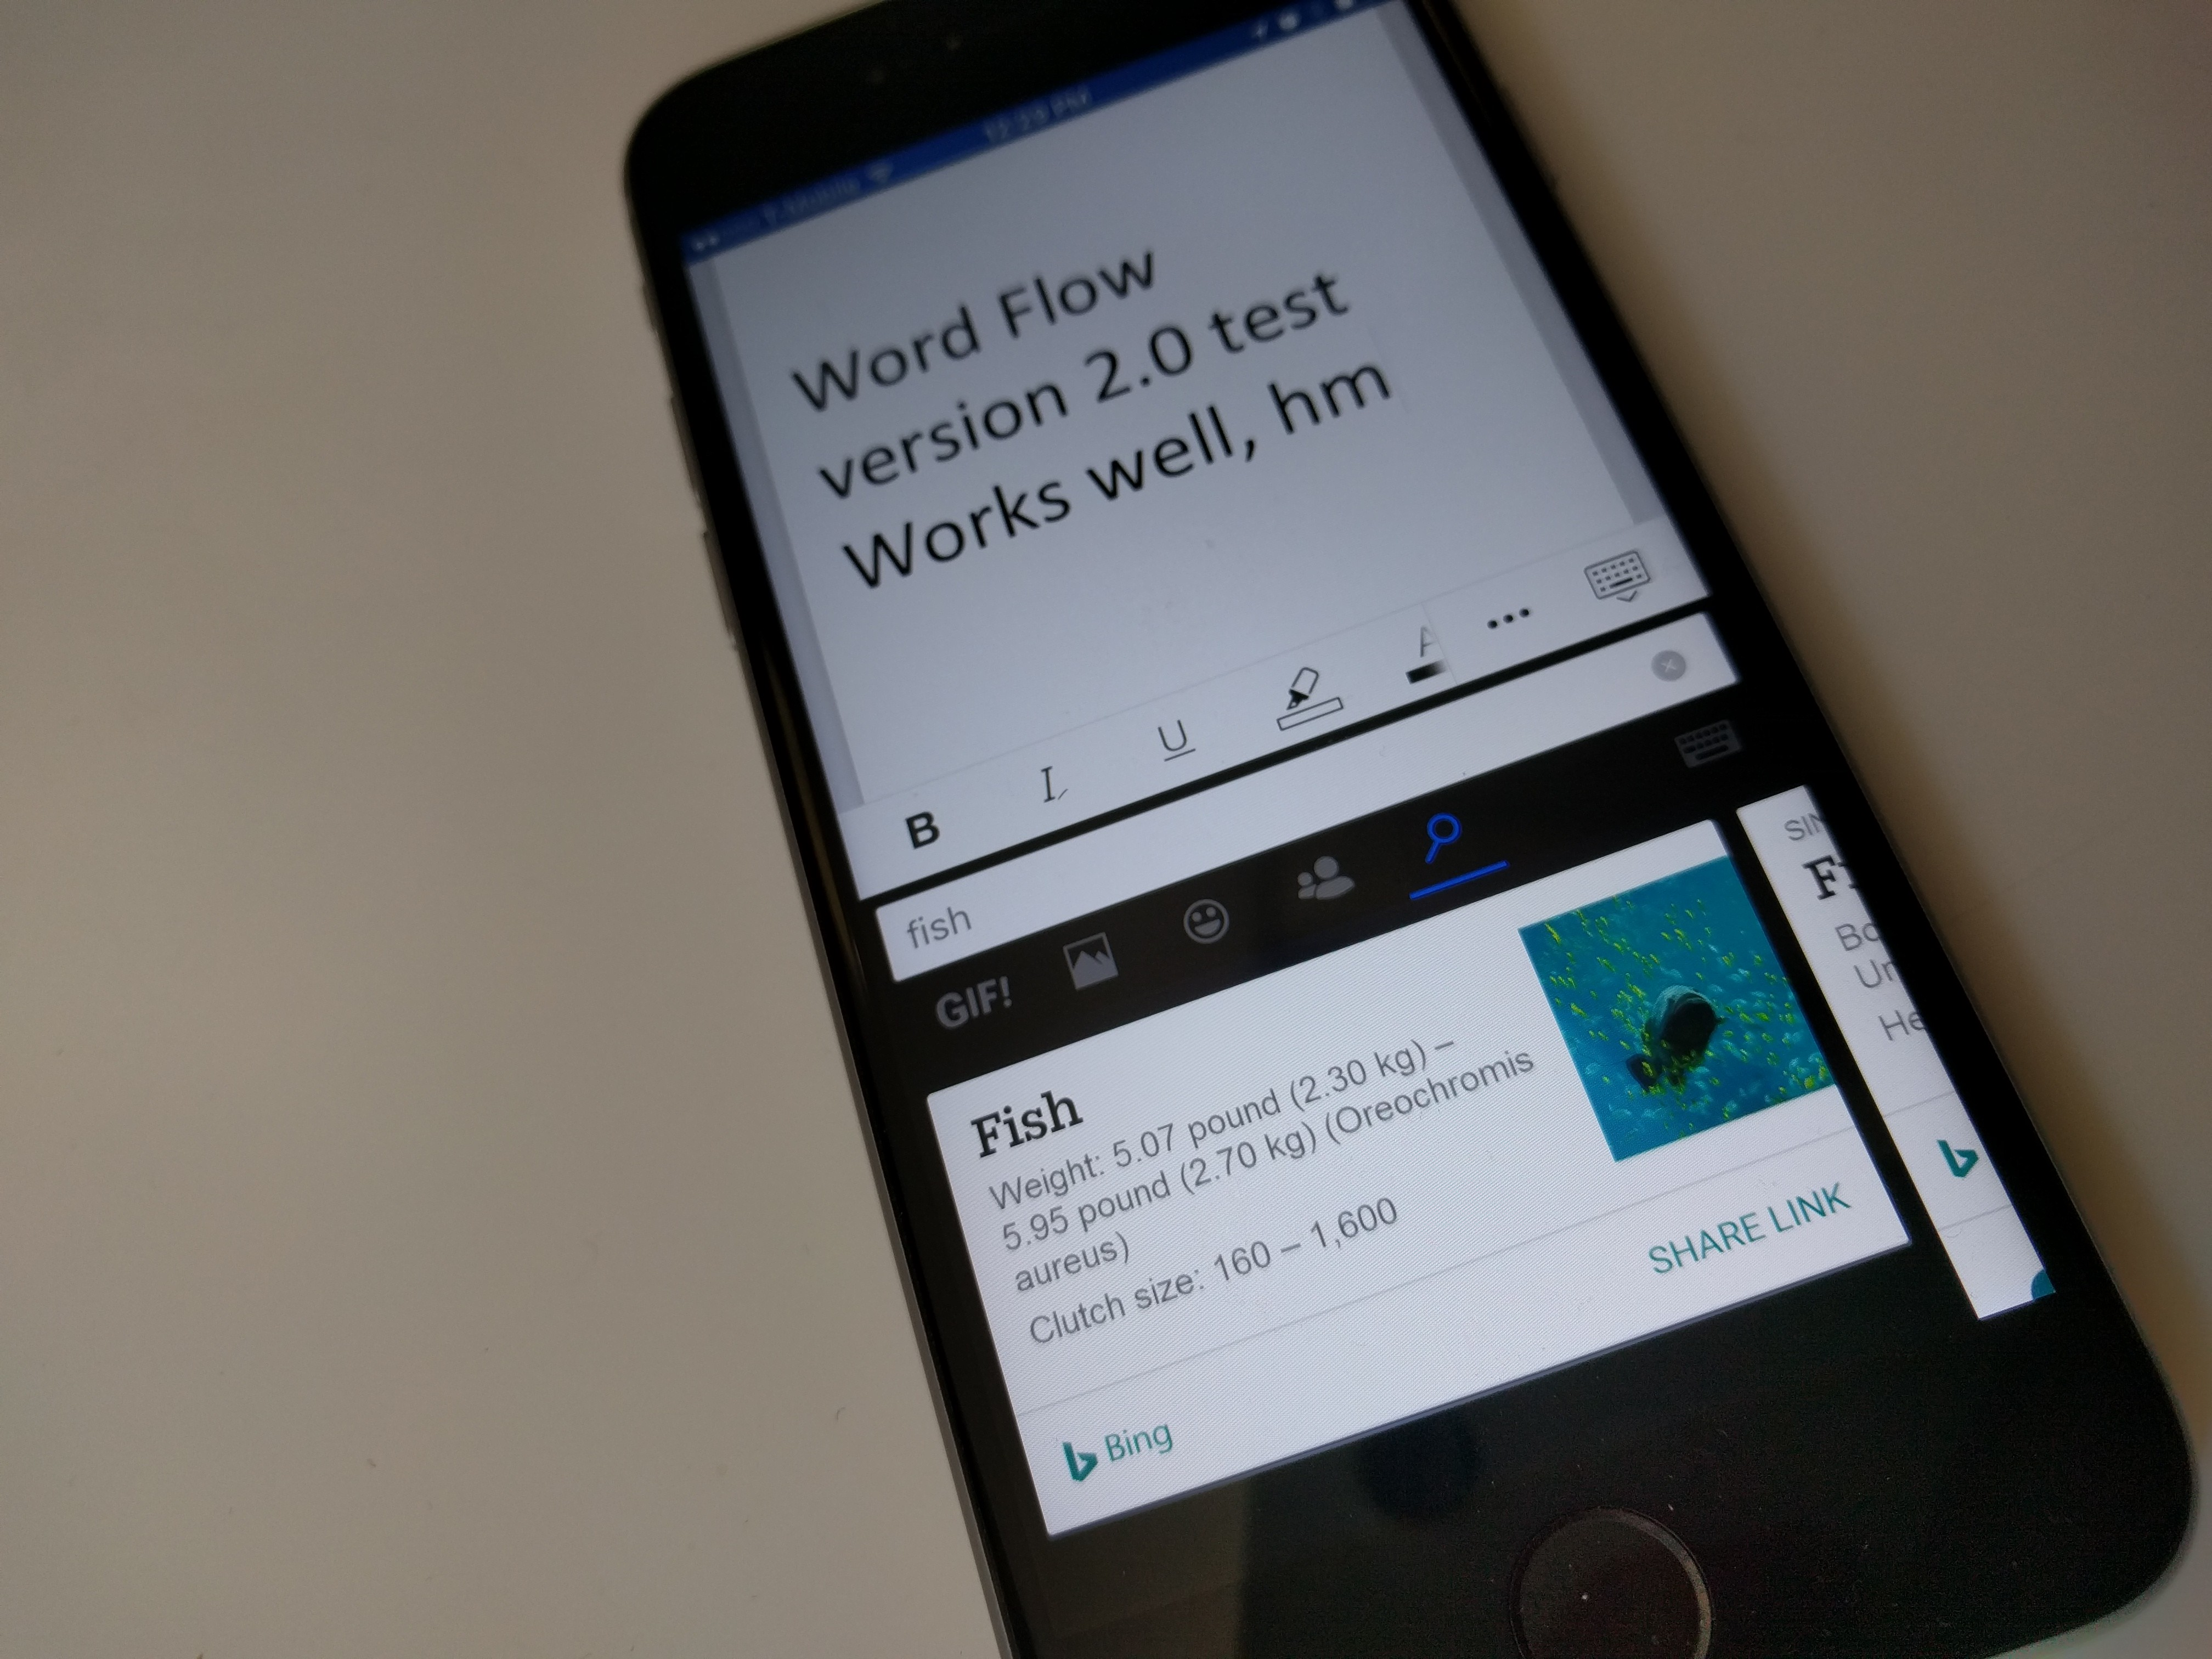 Microsoft updates Word Flow keyboard for iOS with built-in search ...